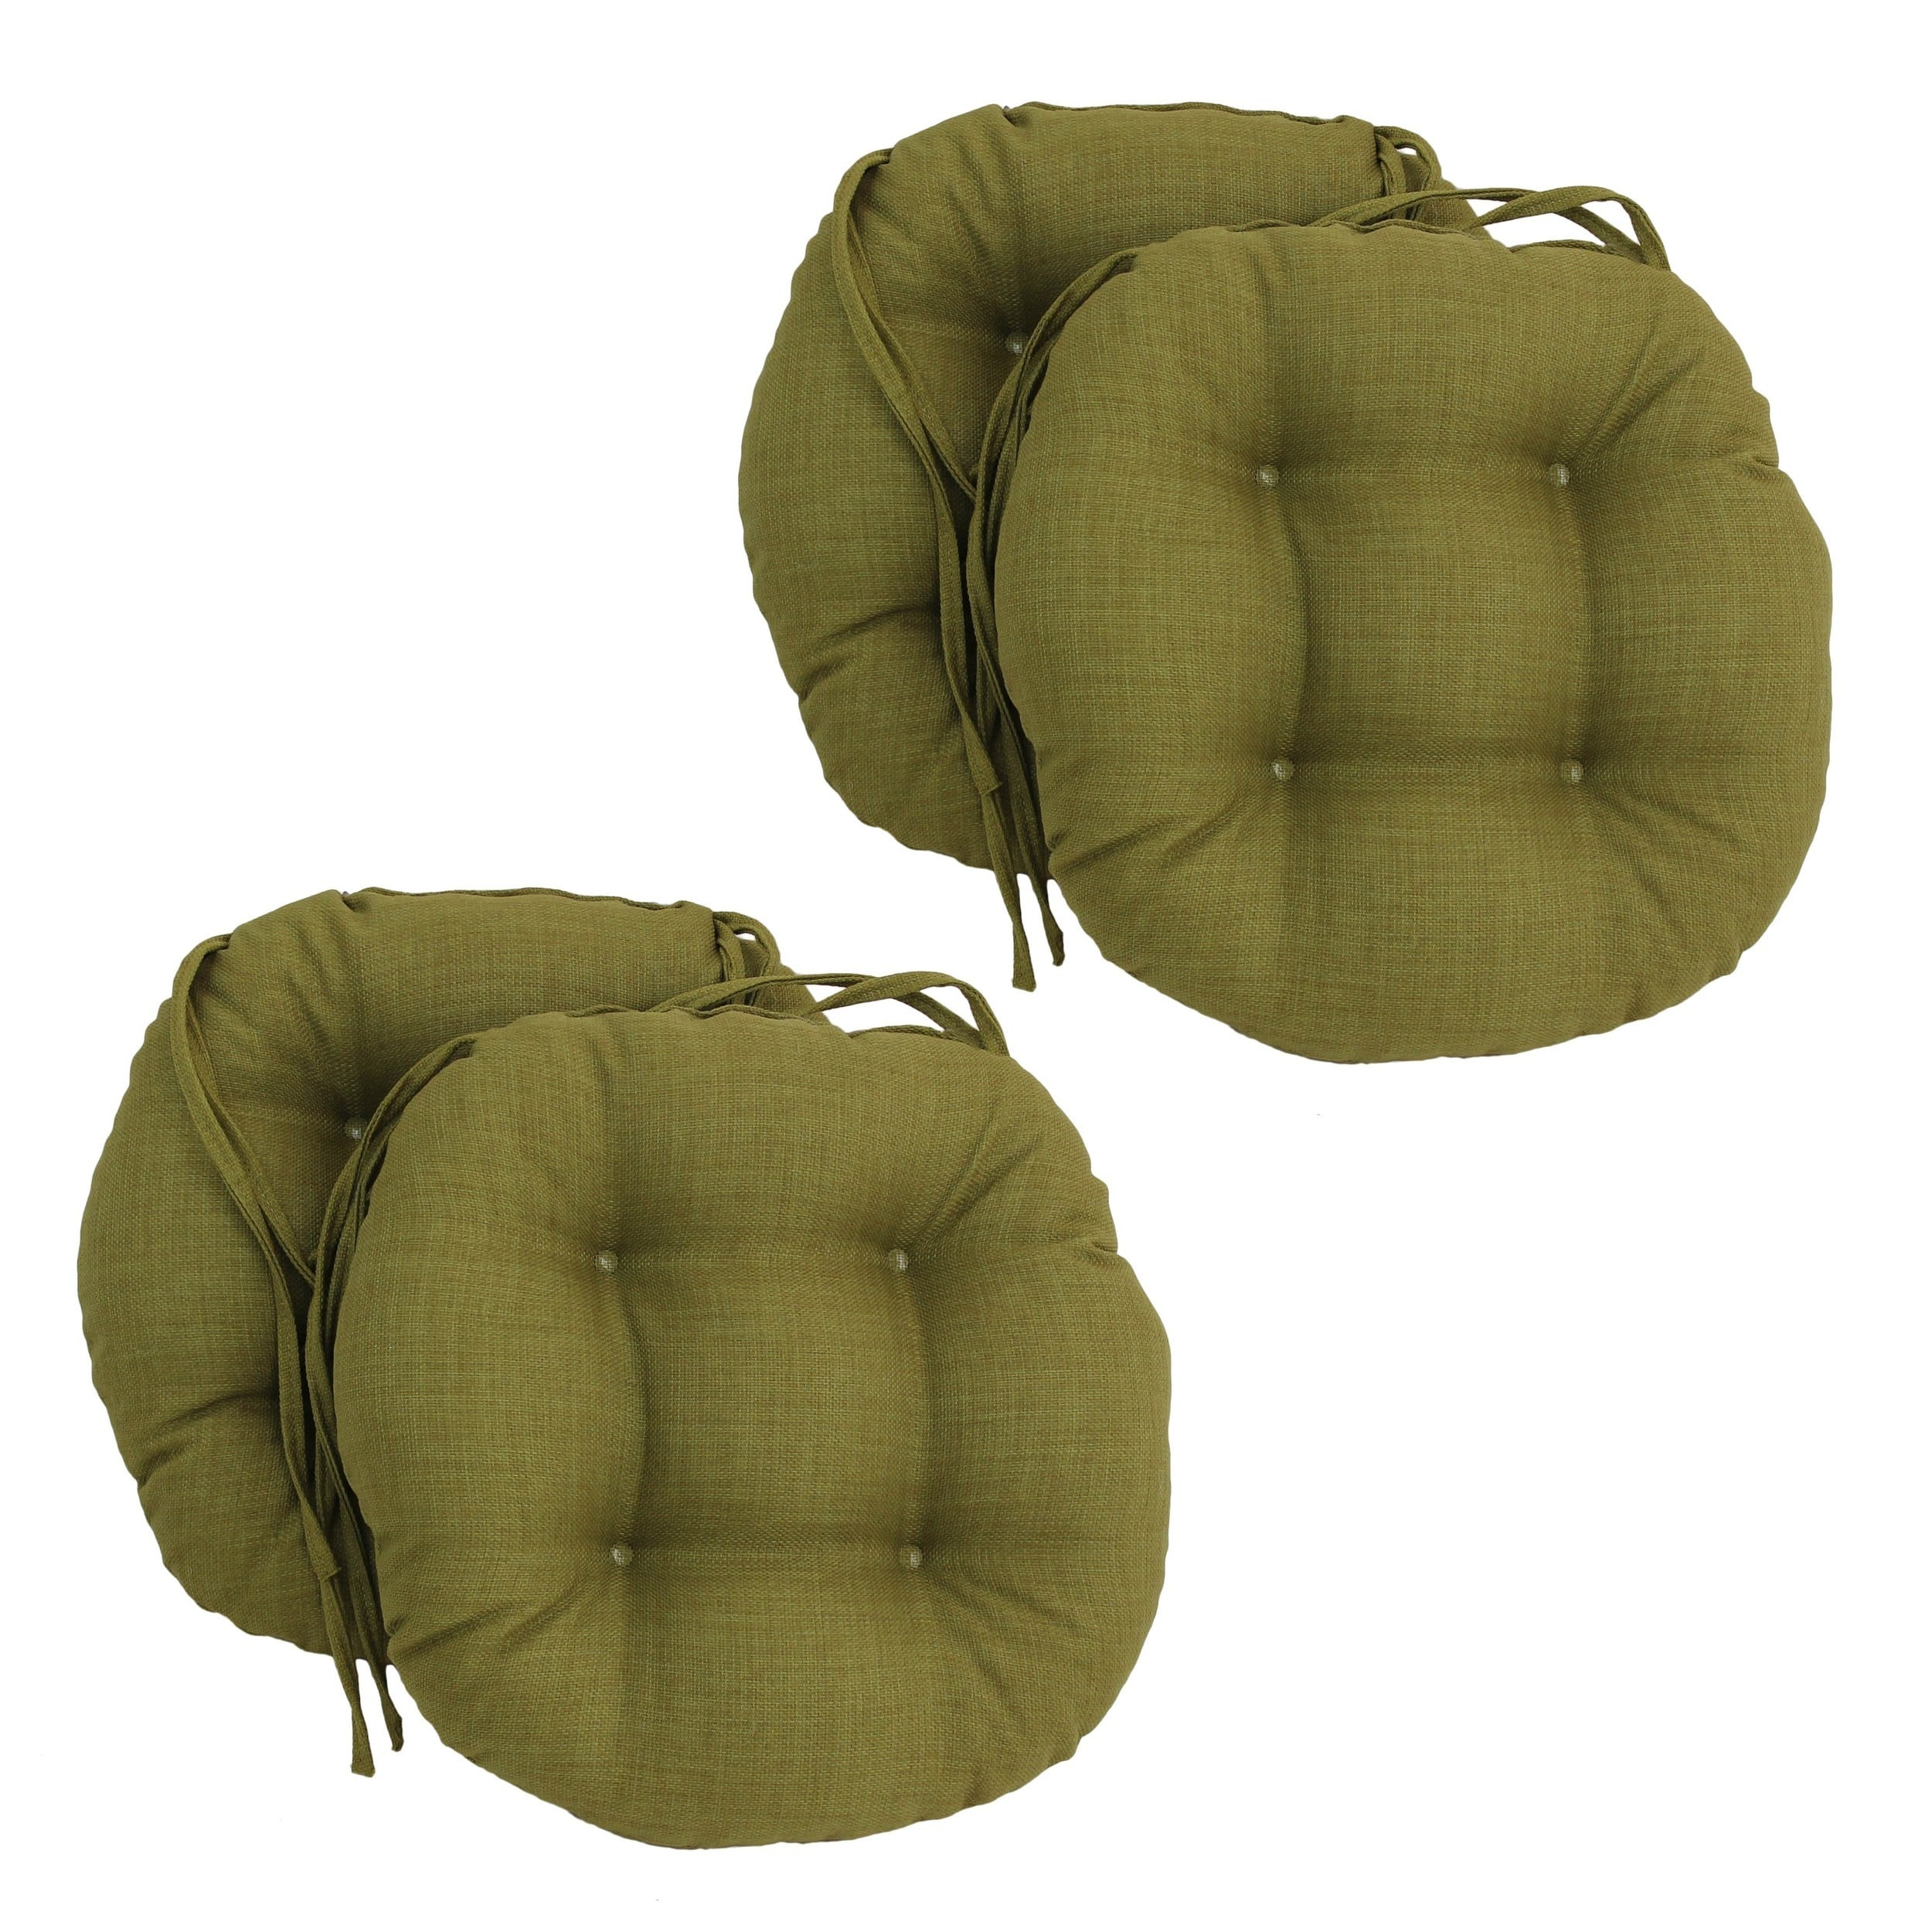 Prime Blazing Needles Solid 16 X 16 Inch Round Outdoor Chair Cushions Set Of 4 Caraccident5 Cool Chair Designs And Ideas Caraccident5Info